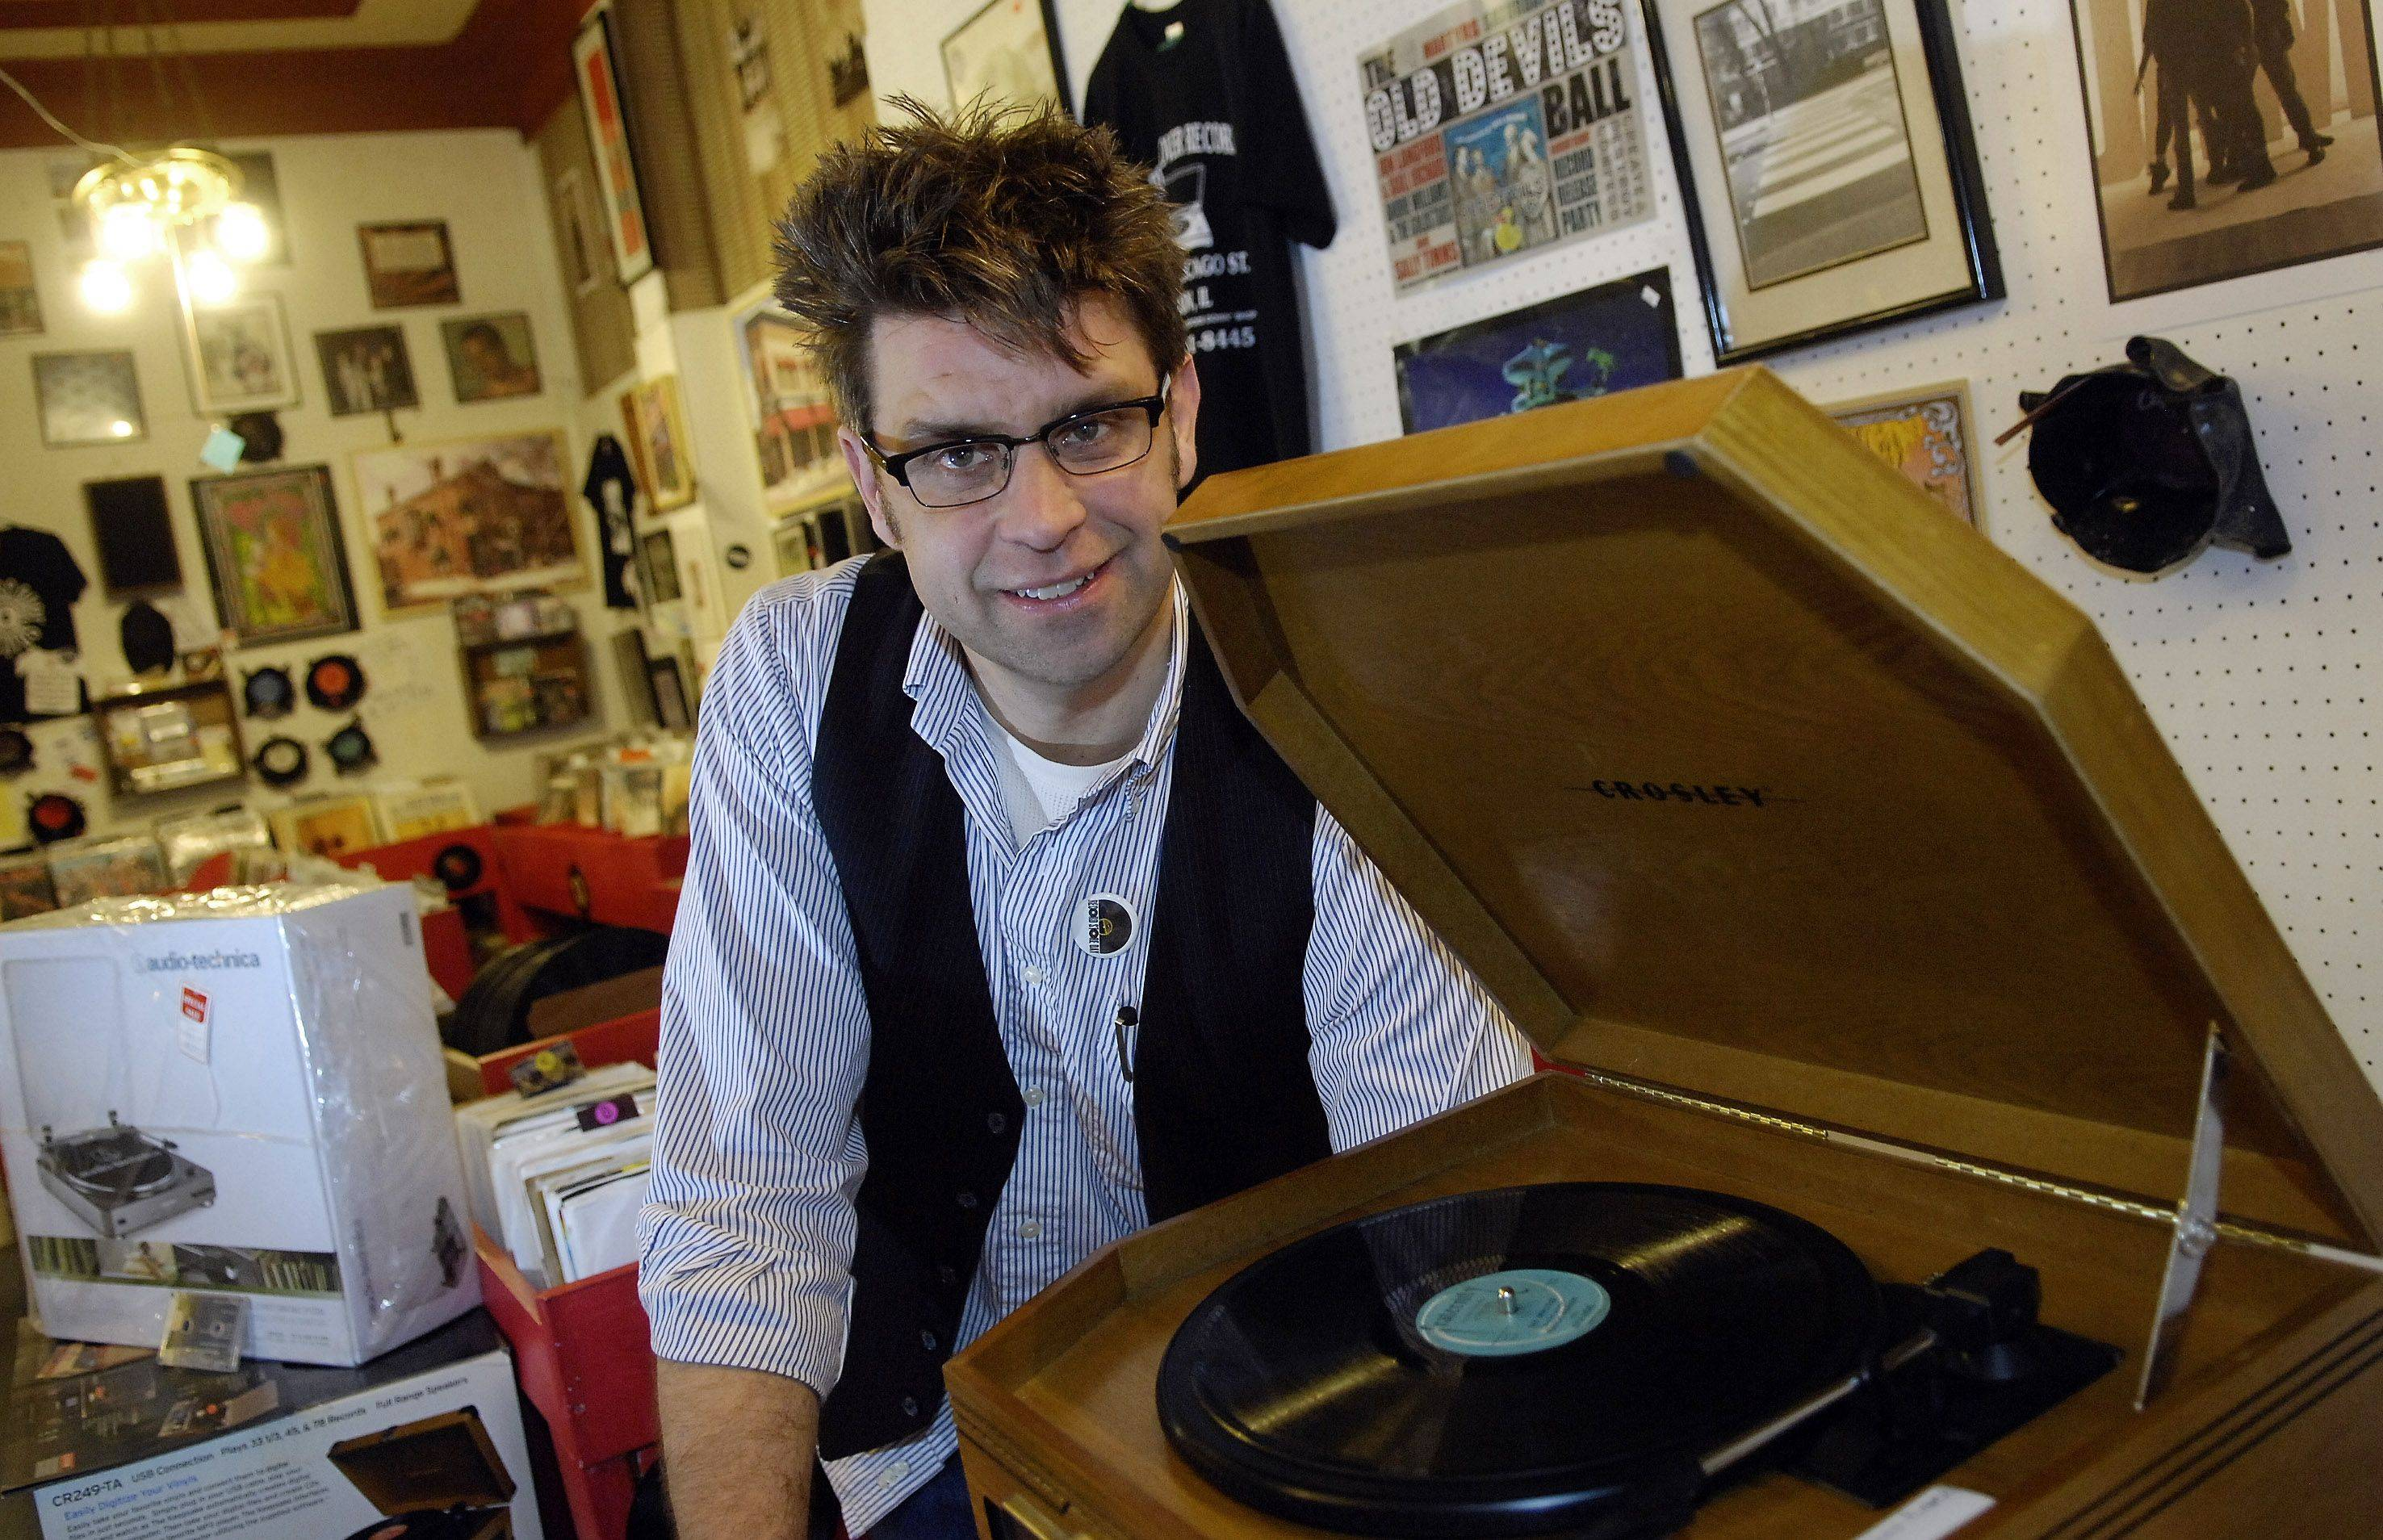 Rich Wagner has fulfilled a longtime dream and opened a record store in Elgin. Rediscover Records opened in June and shares space with an antique shop.